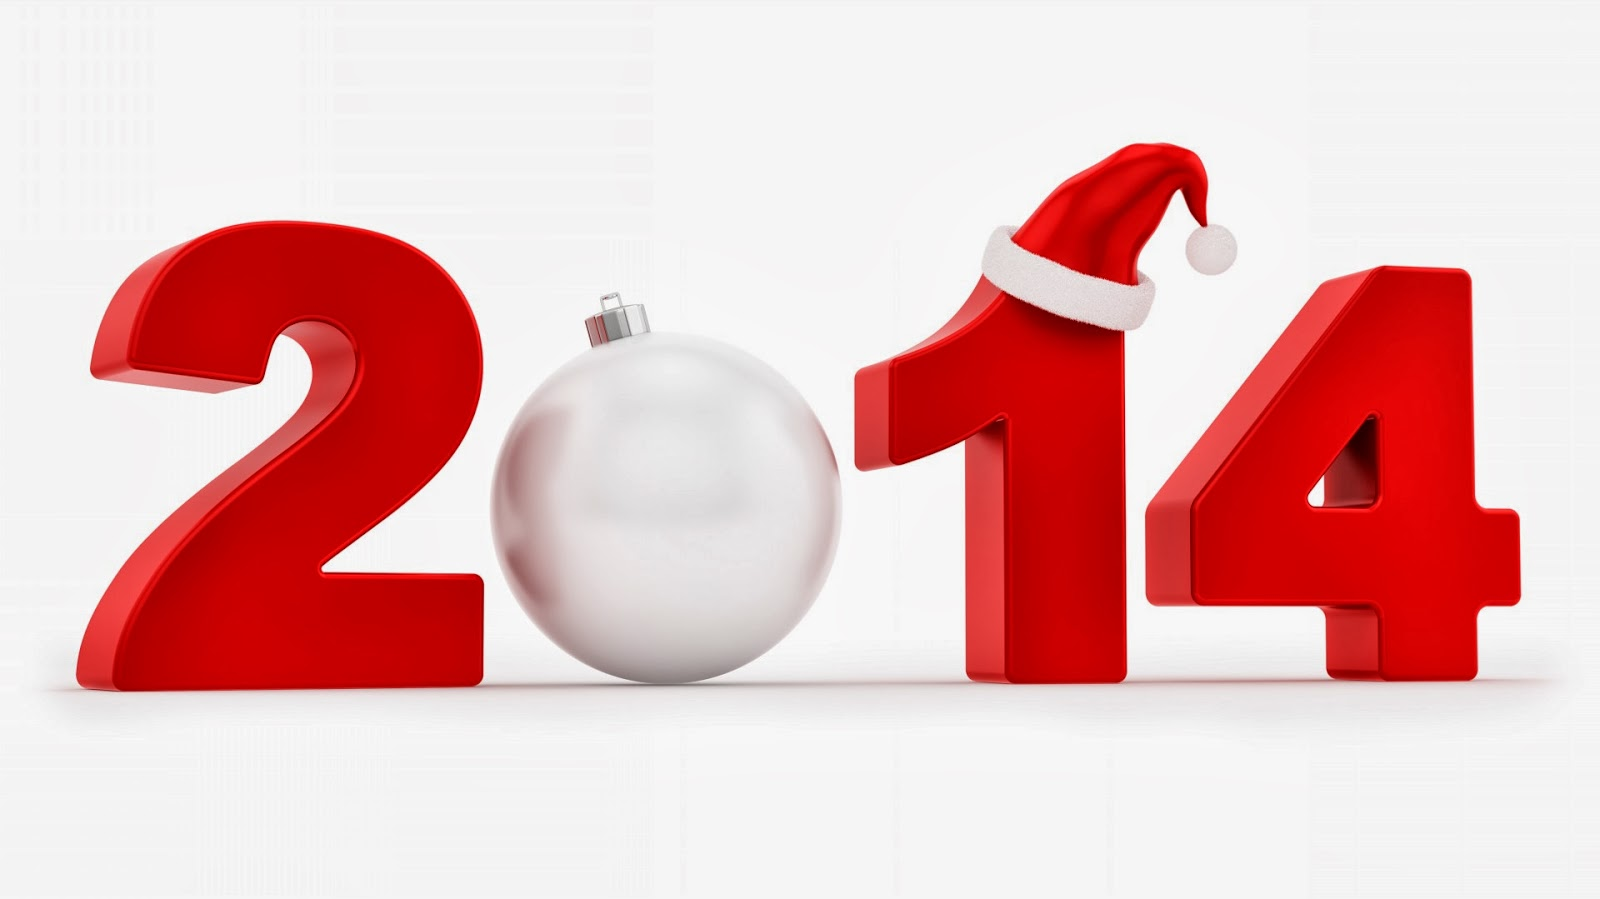 2014 wallpapers hd wallpapers best happy new year wallpaper 2014 hd voltagebd